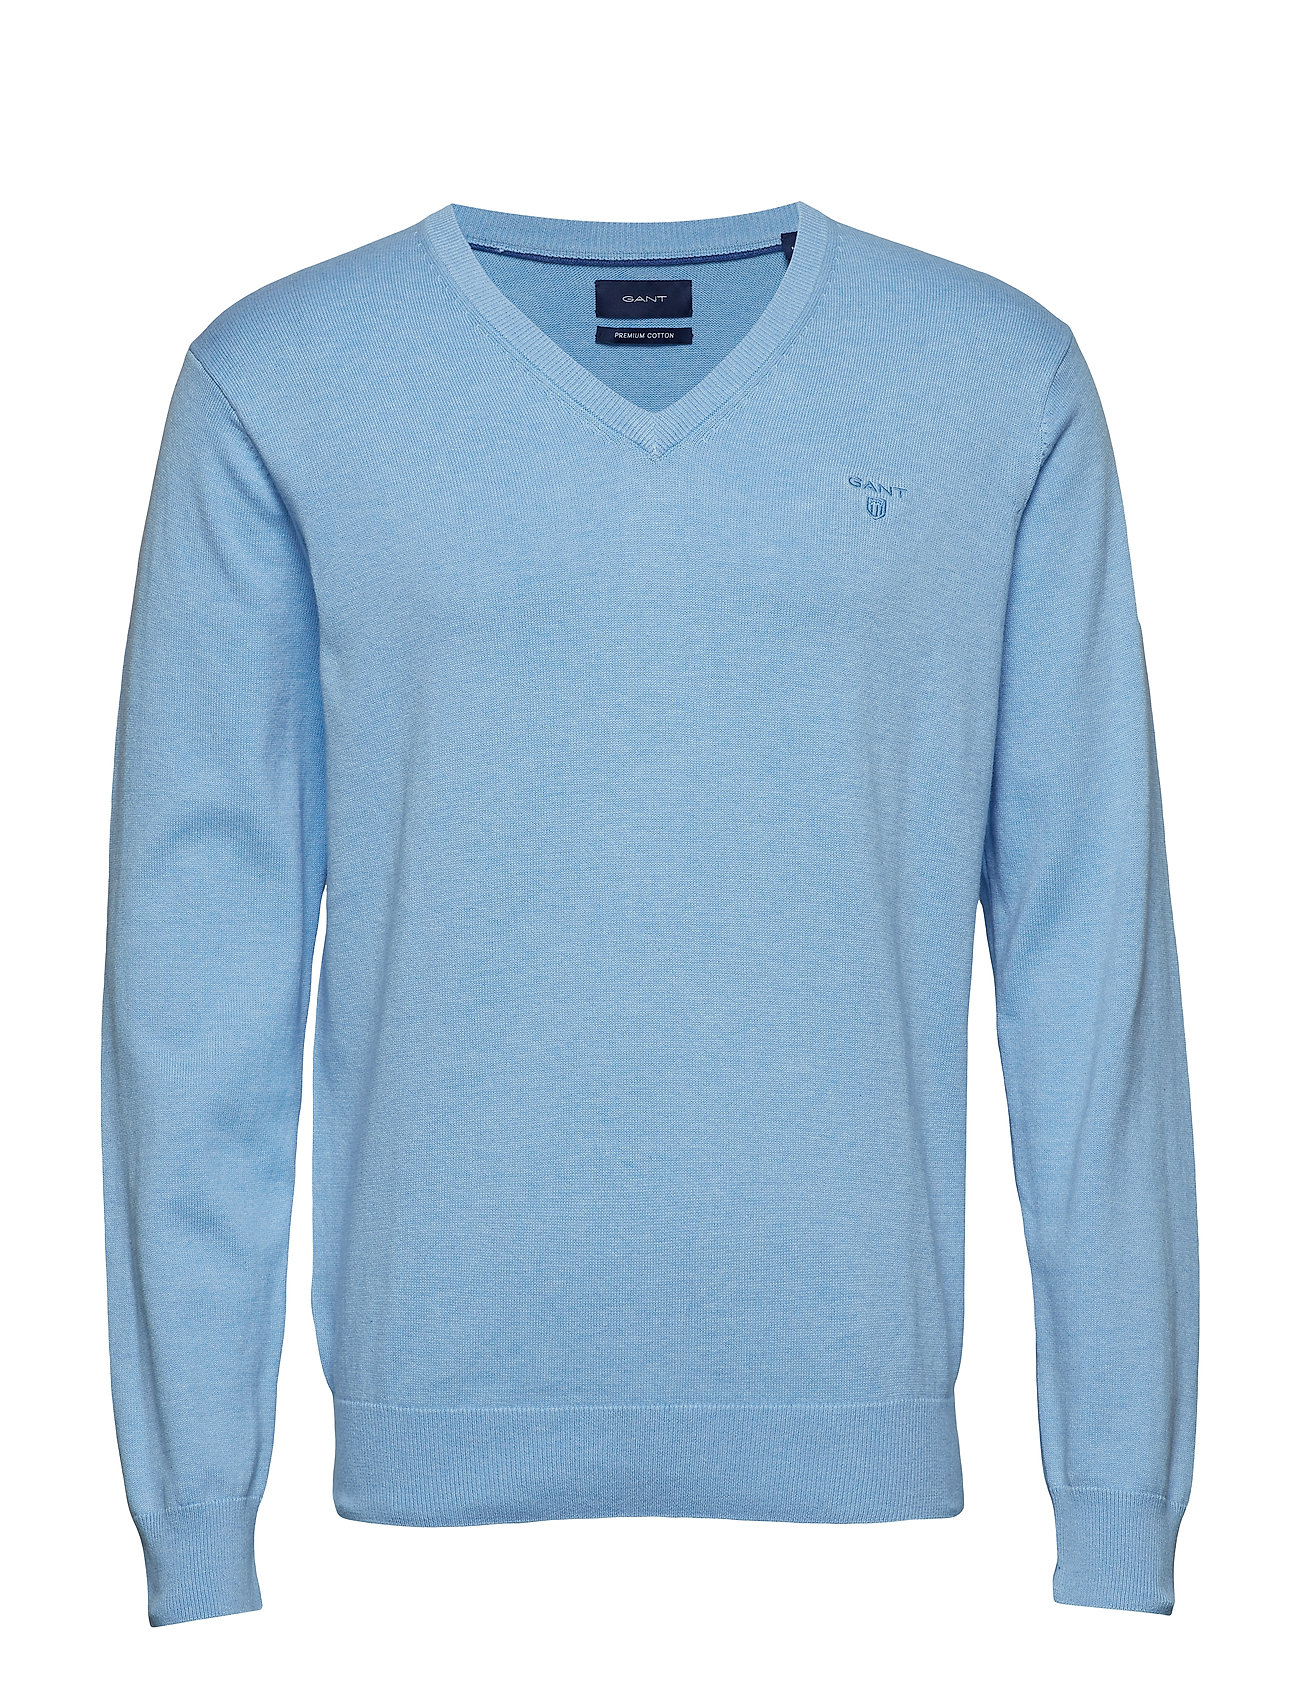 Gant LIGHT WEIGHT COTTON V-NECK - LT BLUE MELANGE